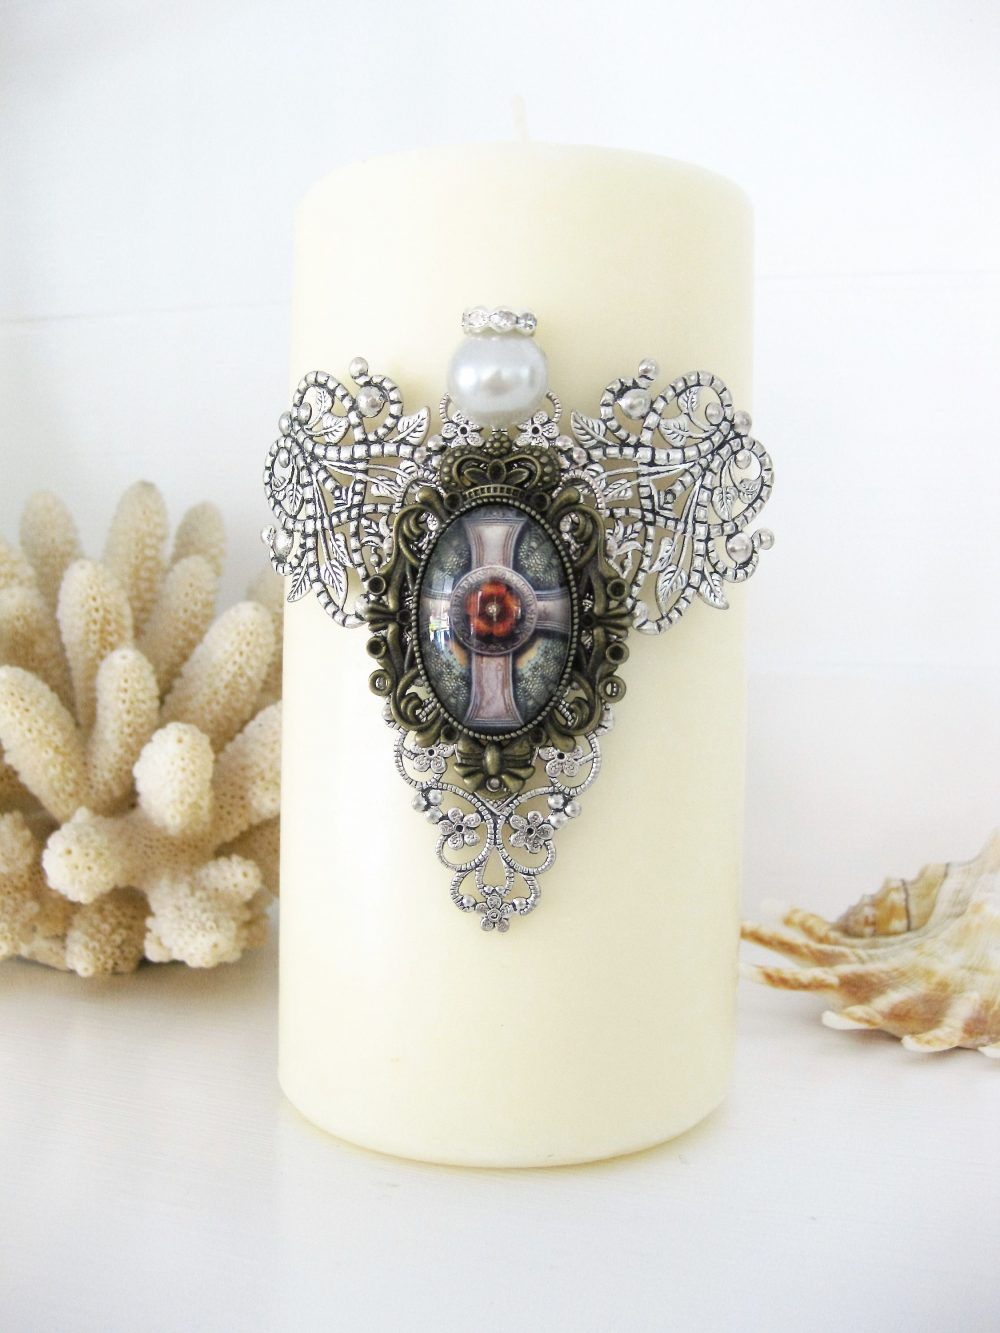 Angel Pillar Candles, in Memory Of Sympathy Gift, Candle Pin, Tack, Home Decor Decorations, Housewarming Gift